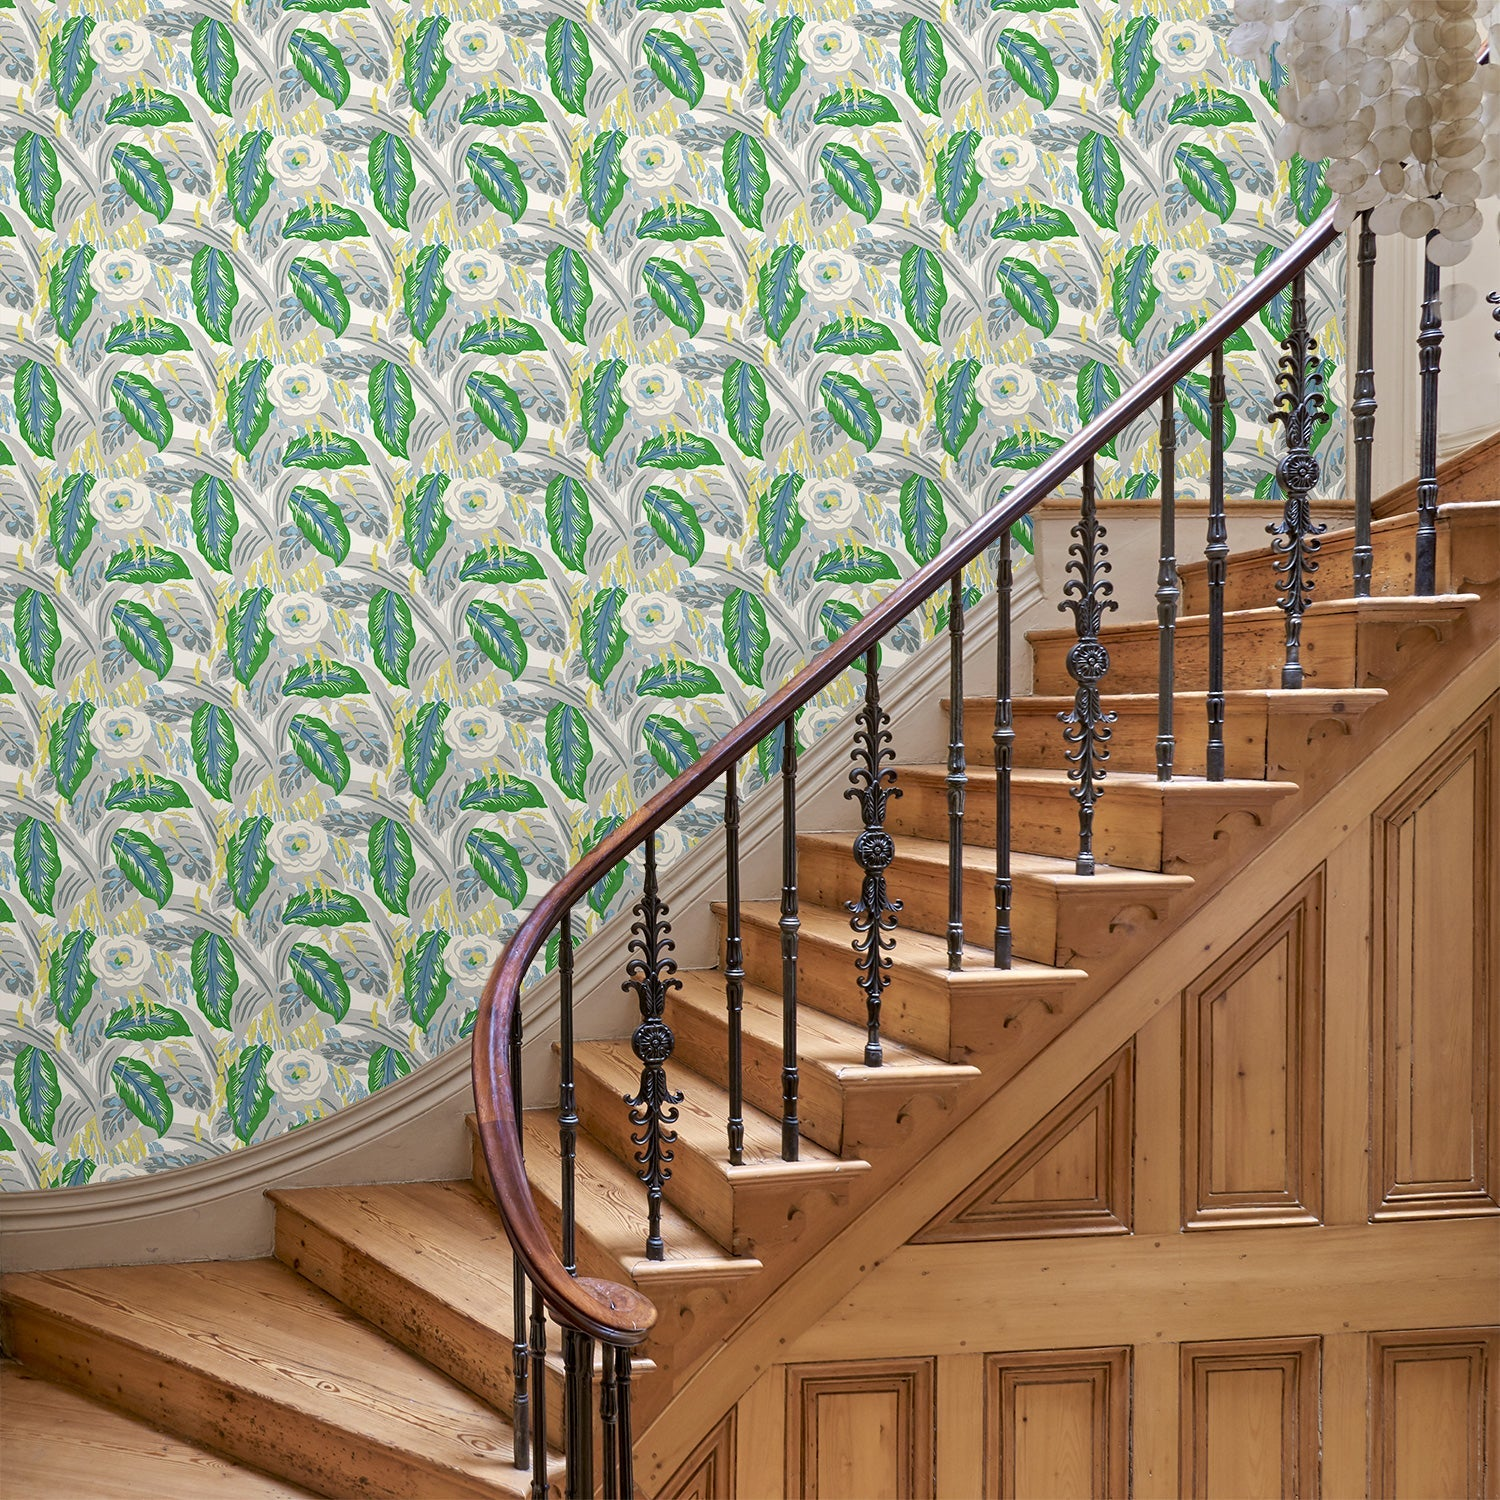 Hallway featuring a luxury designer wallpaper with a green floral design